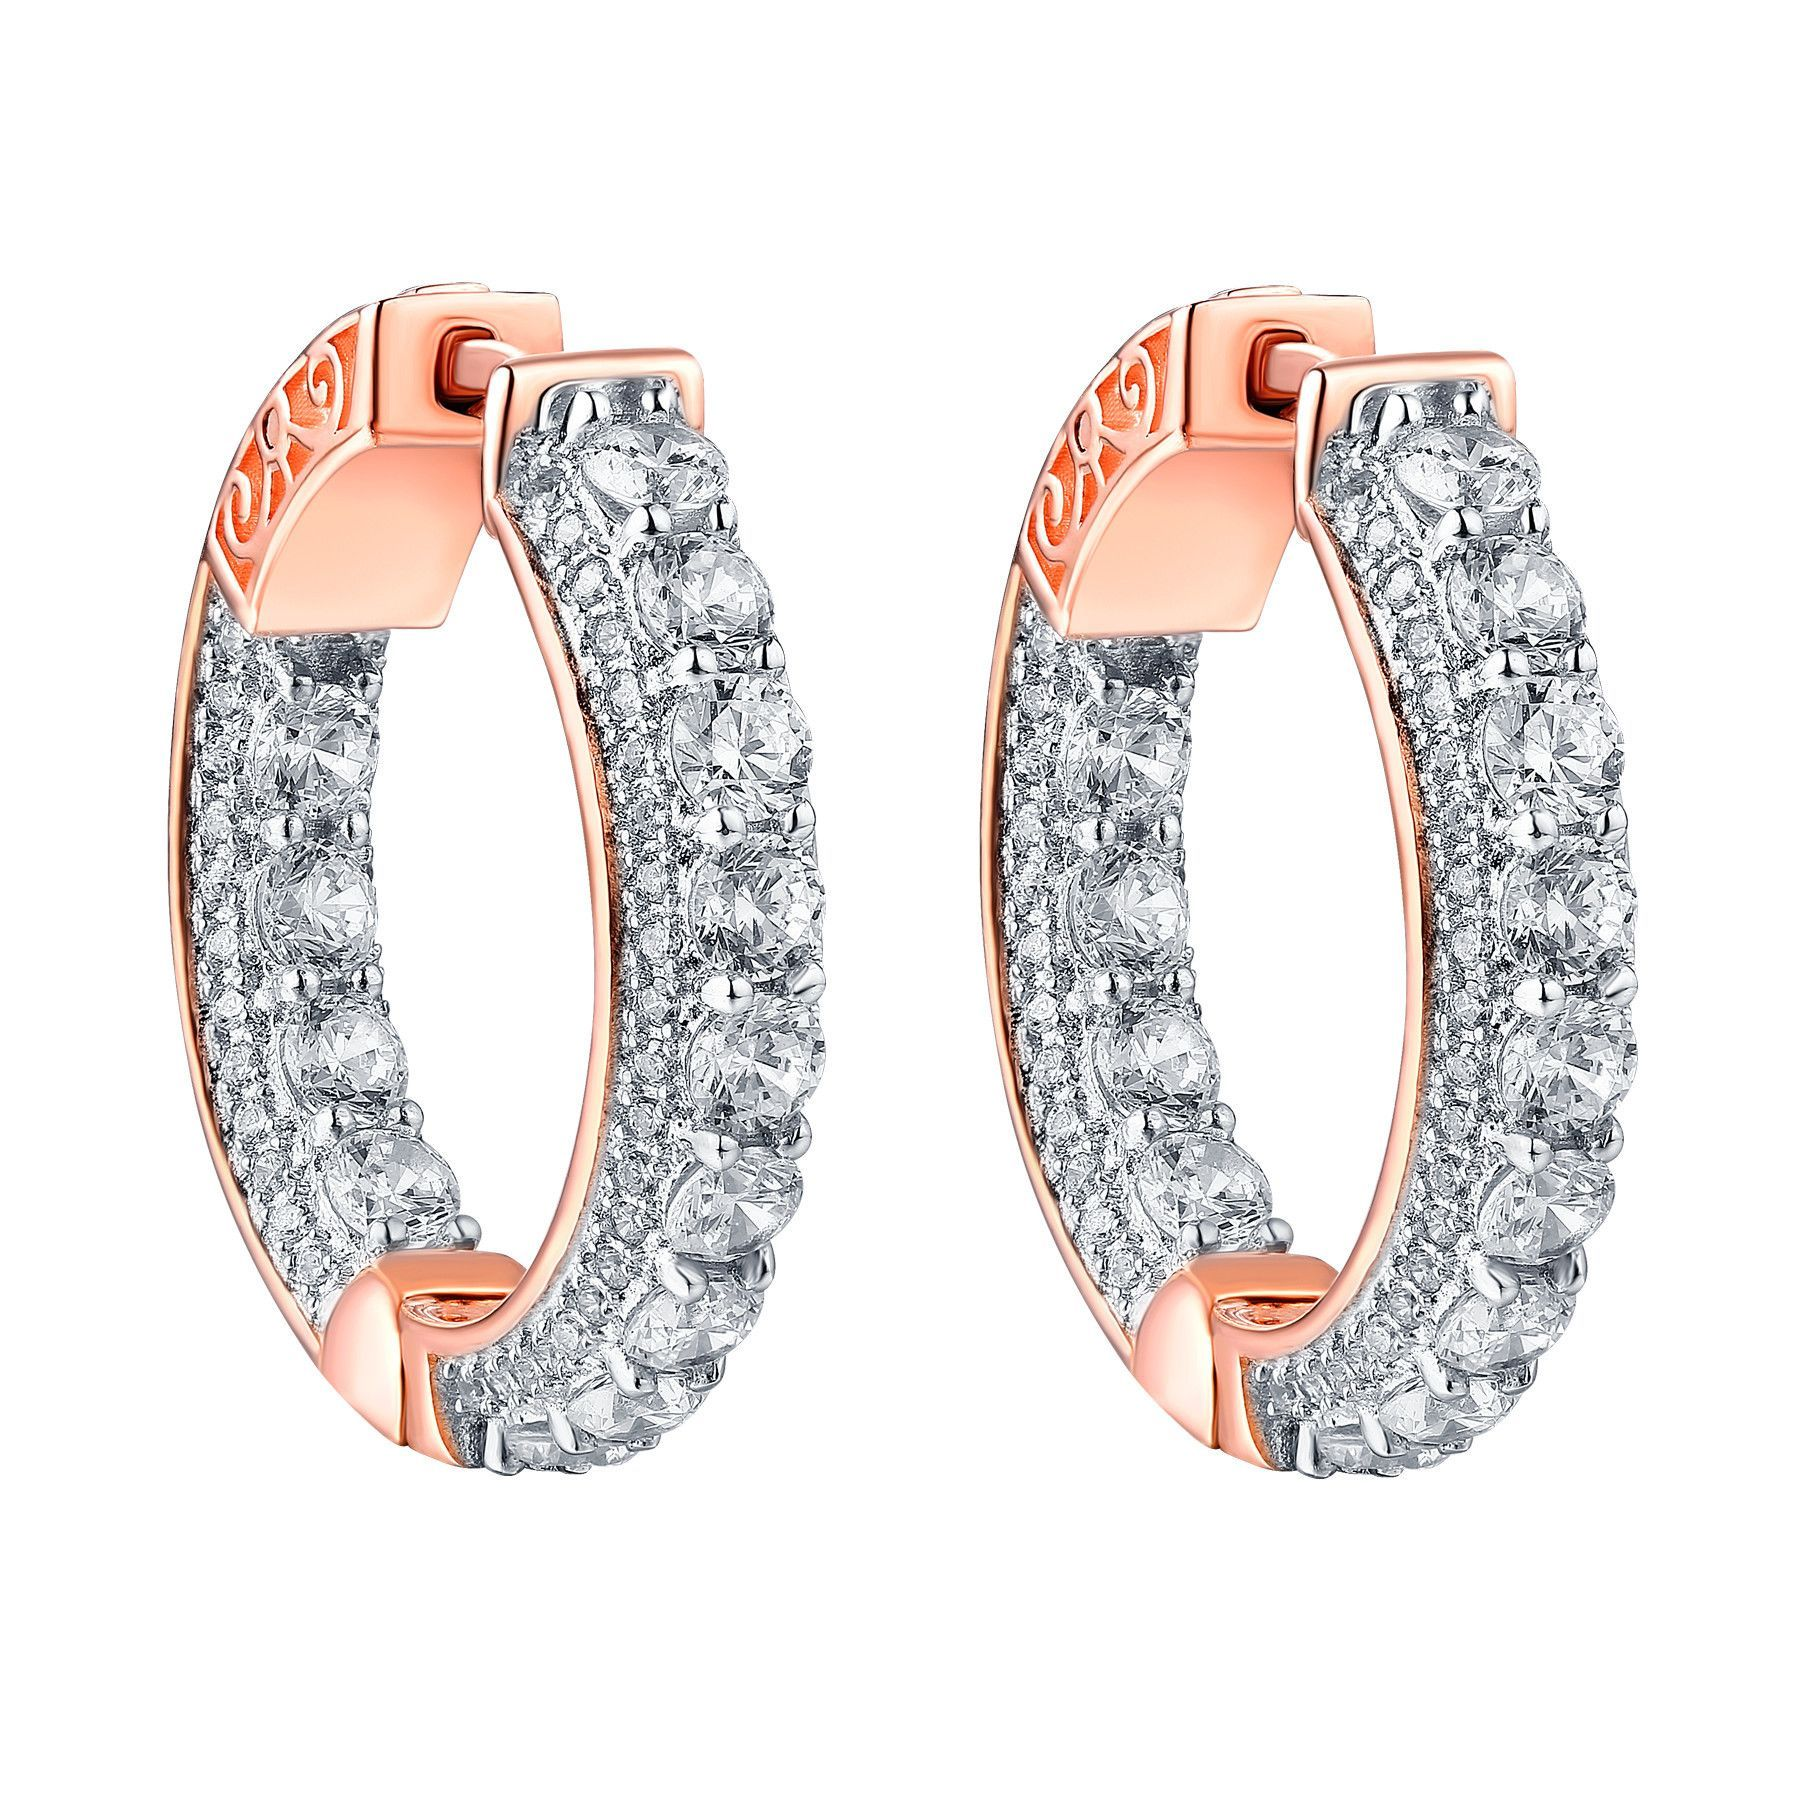 Hoop earrings iced out simulated diamonds k rose finish sterling